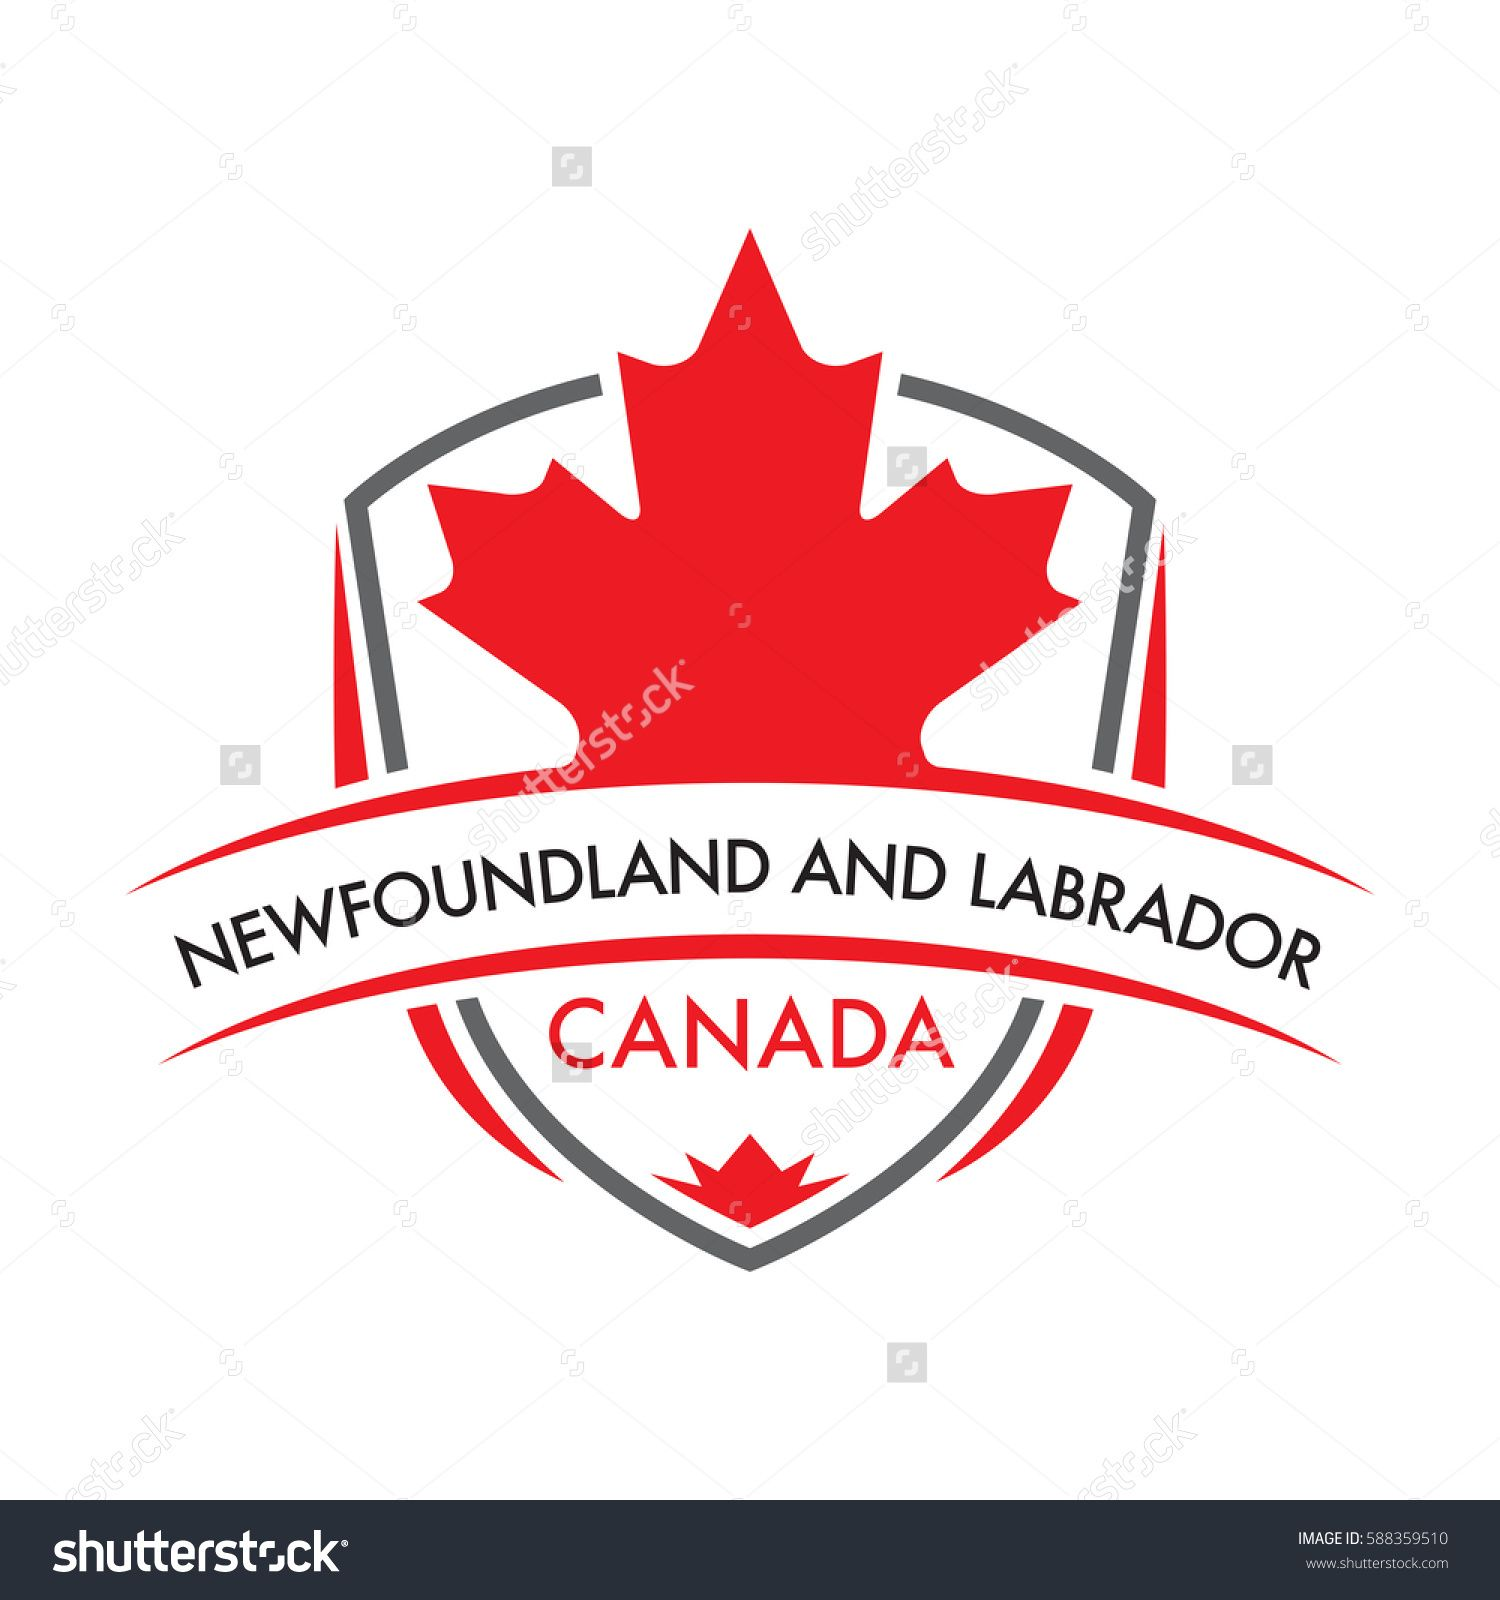 A Canadian province crest in vector format featuring a large